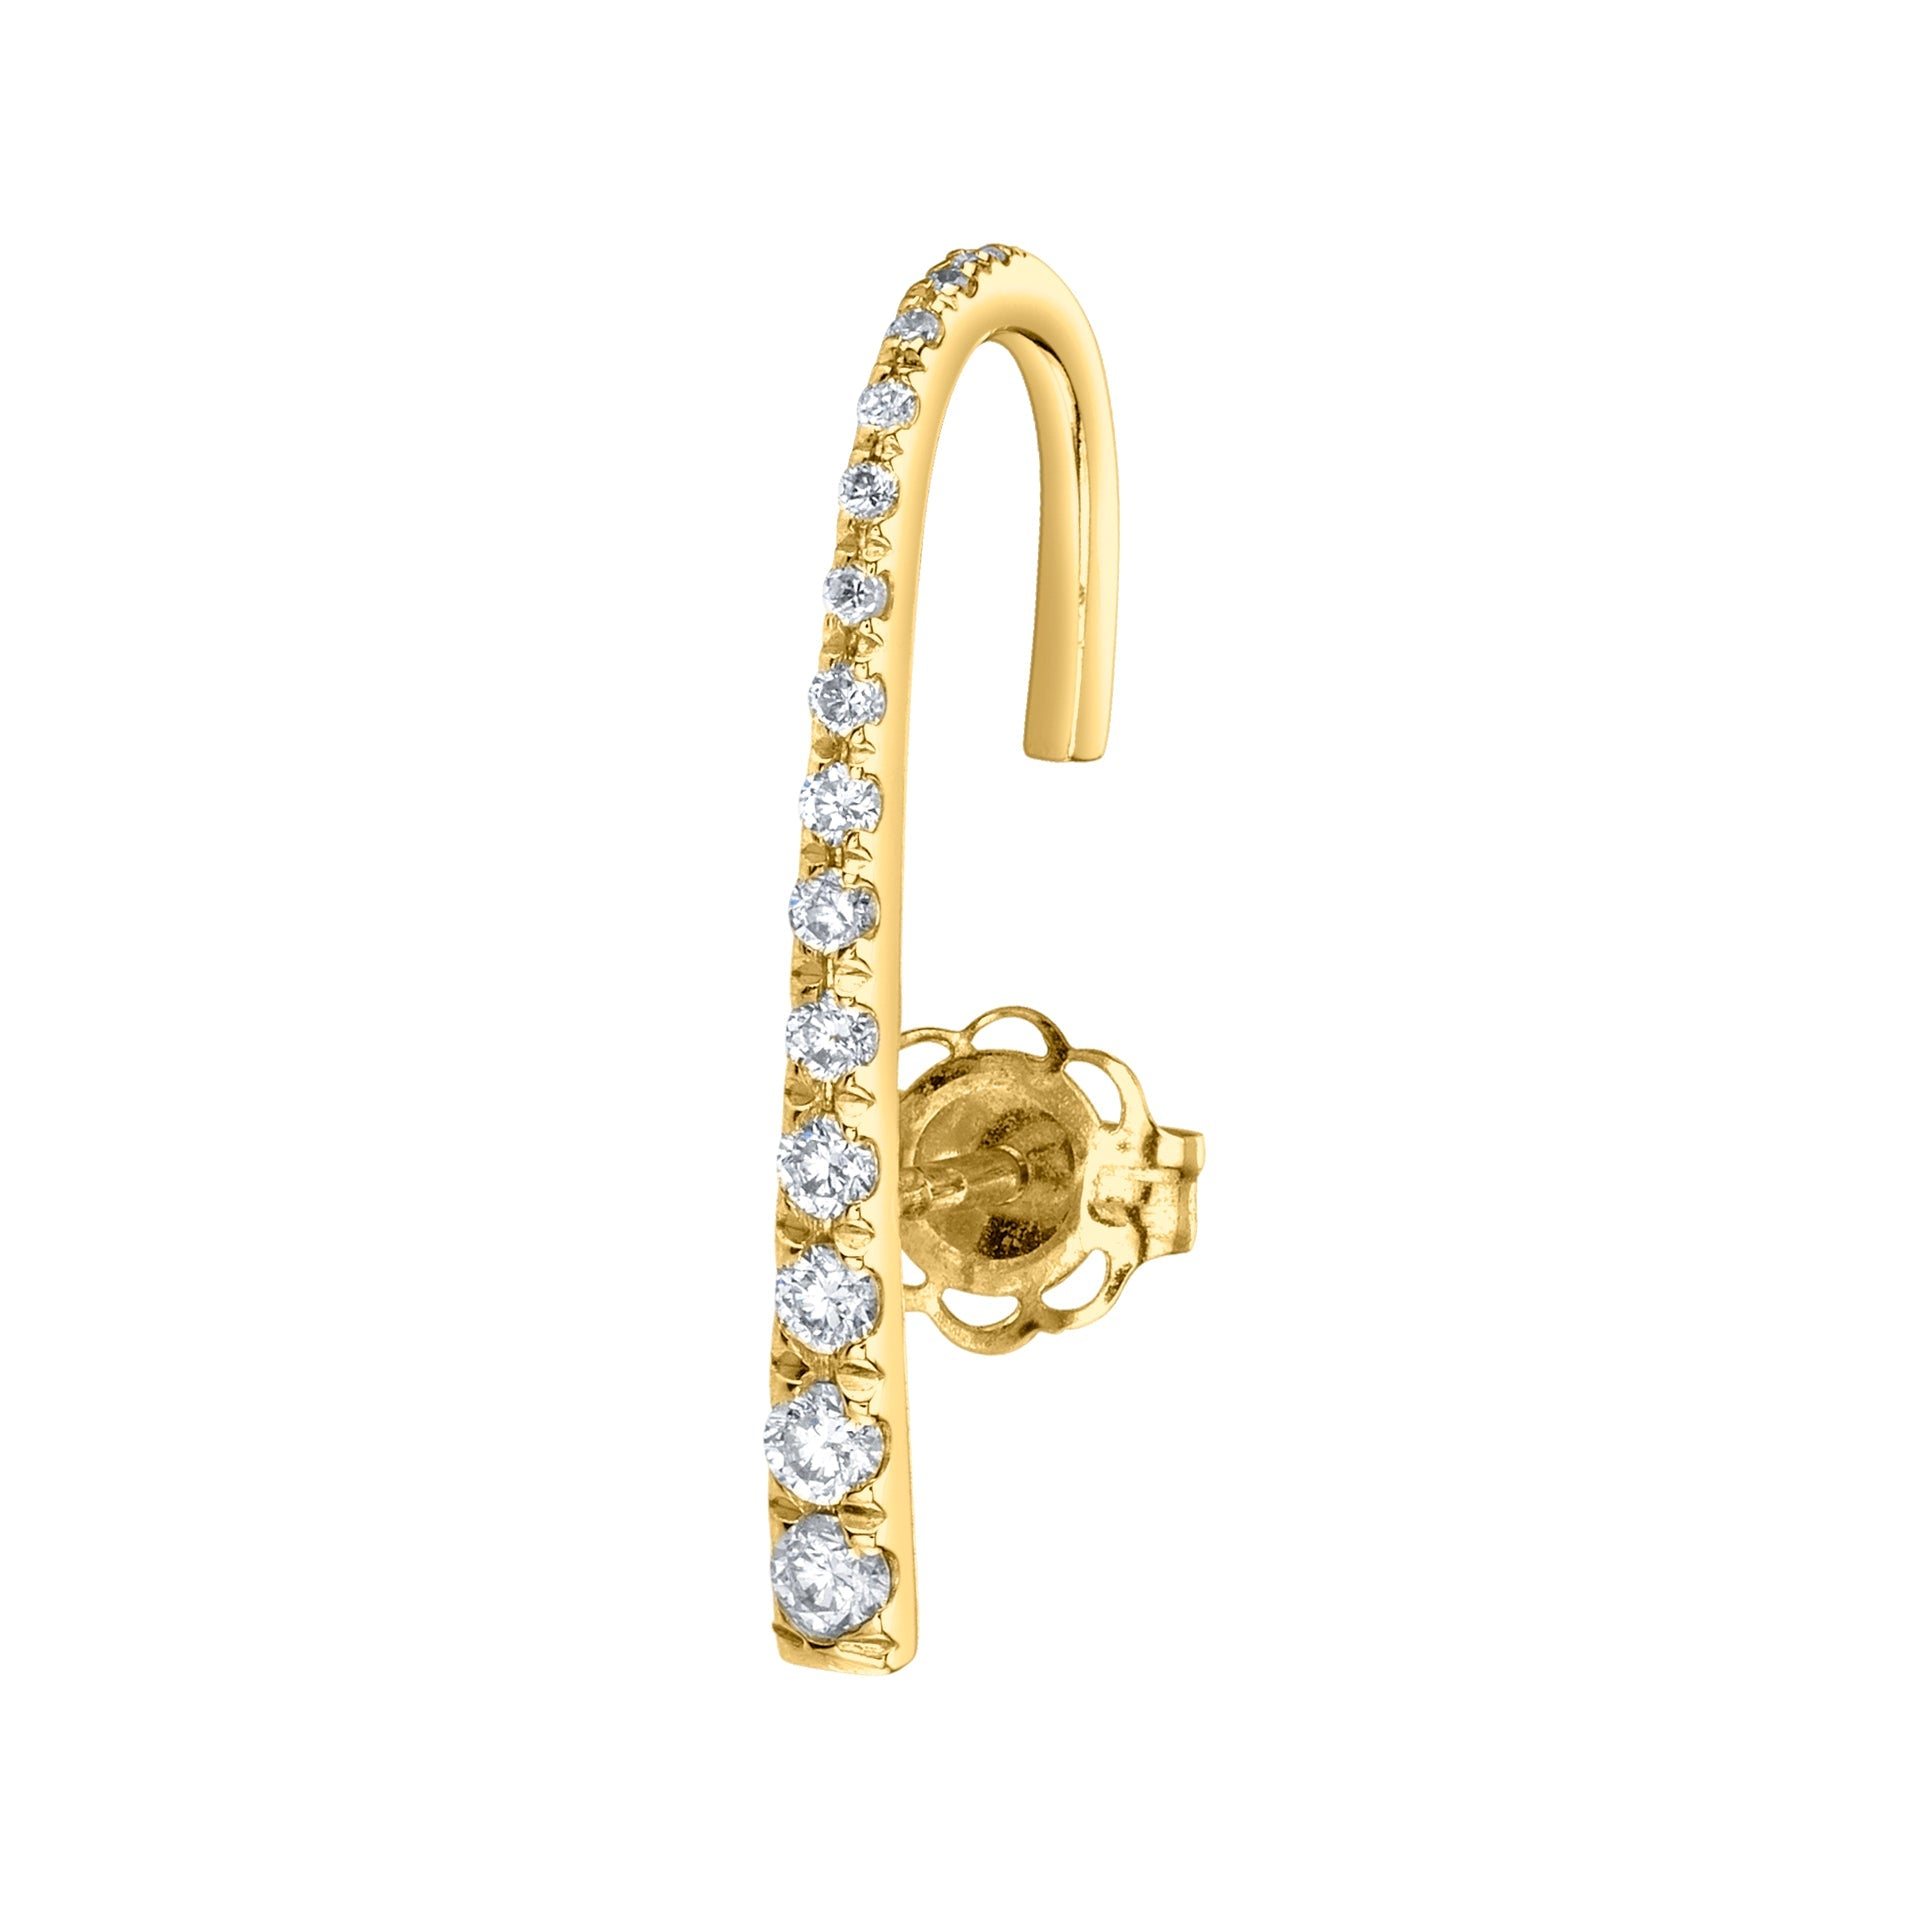 J Earring With White Pavé